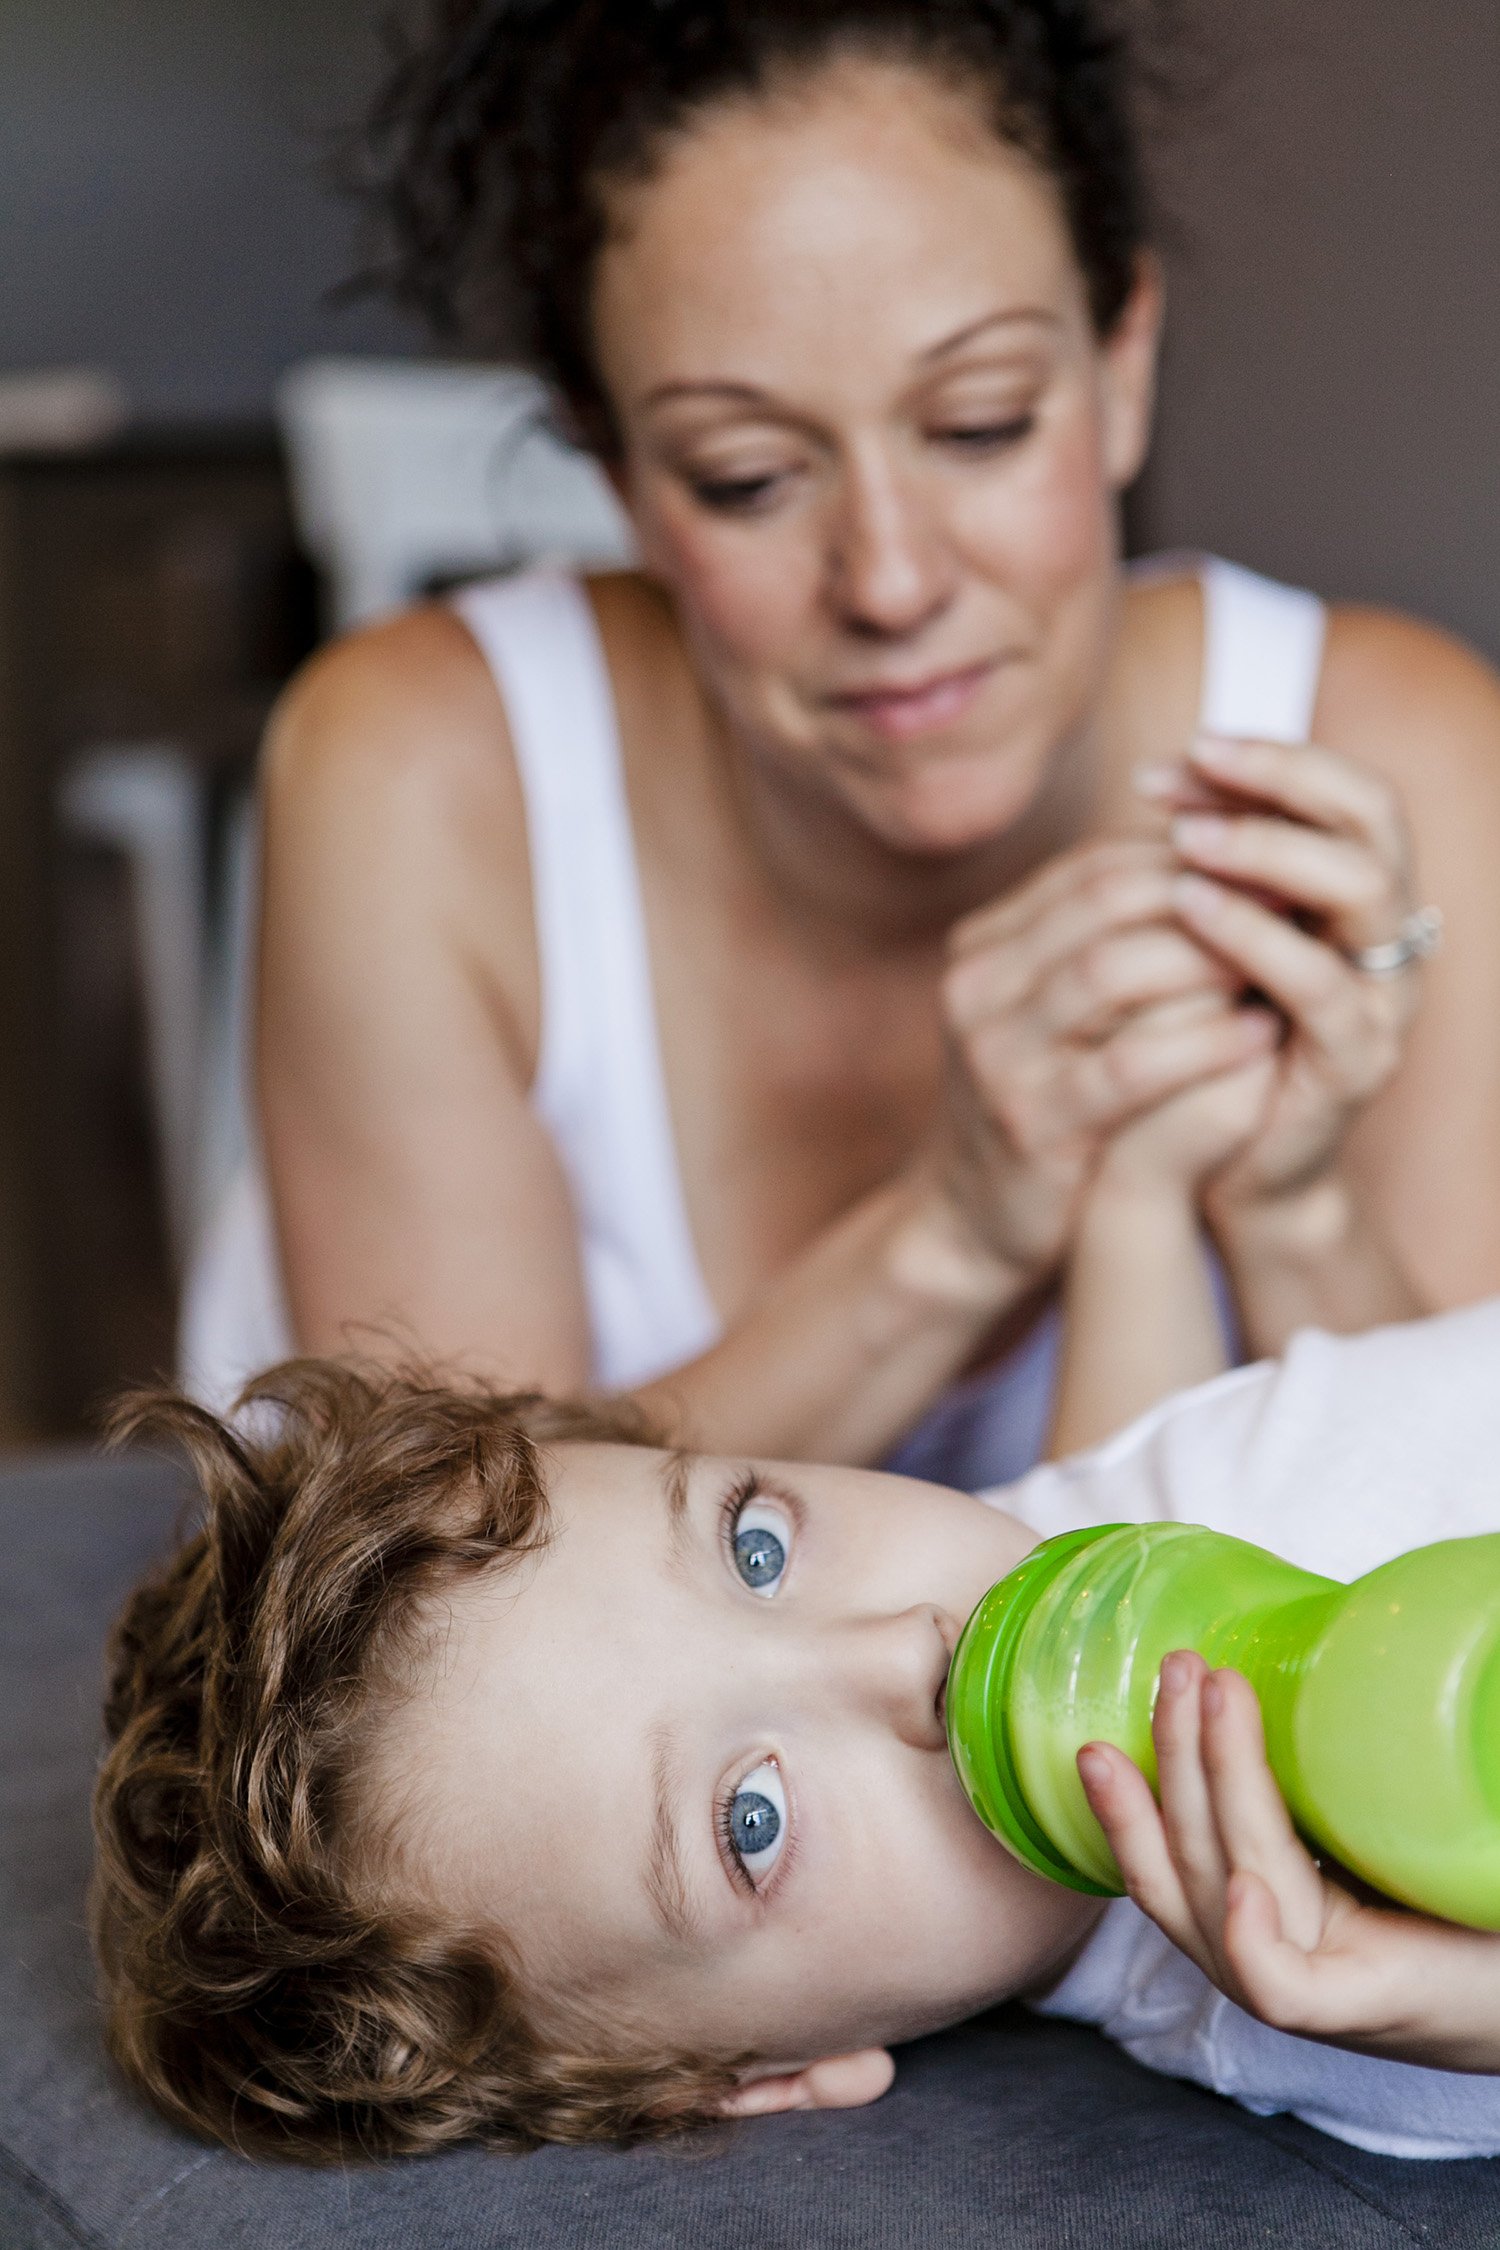 lifestyle-editorial-children-washington-dc-malek-naz-photography-contempo-kids-bottle-feeding.jpg